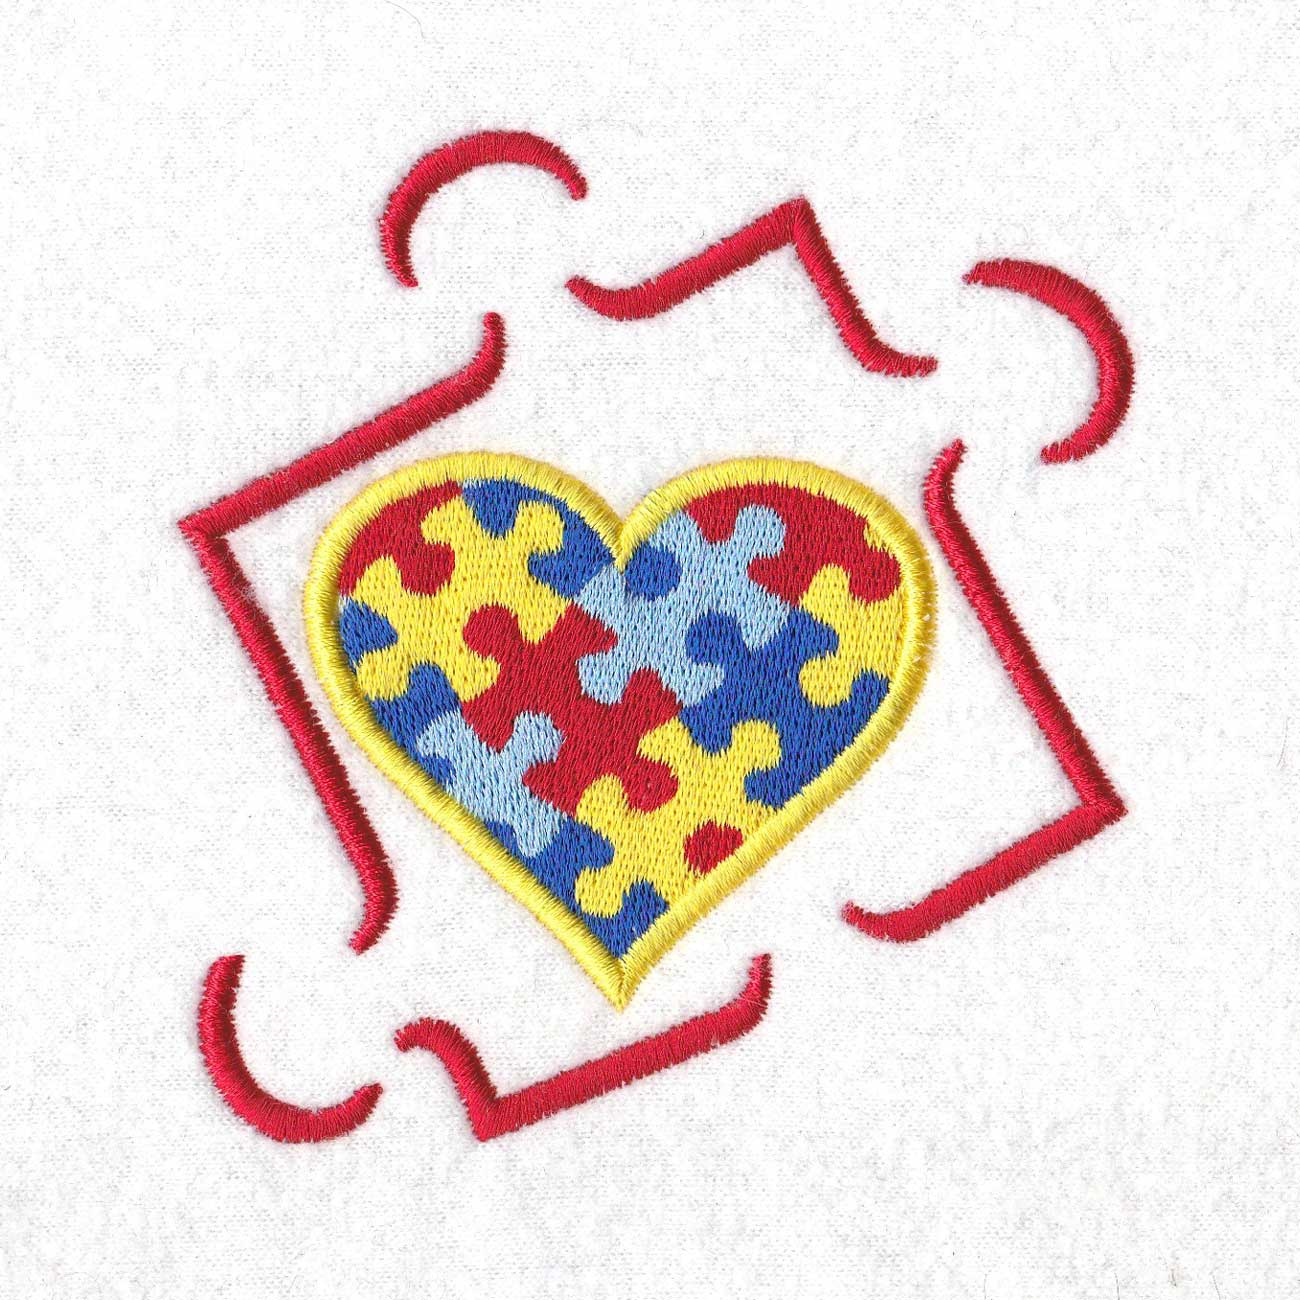 colored colorful puzzle detail puzzle piece border puzzled heart middle embroidery design support autism awareness